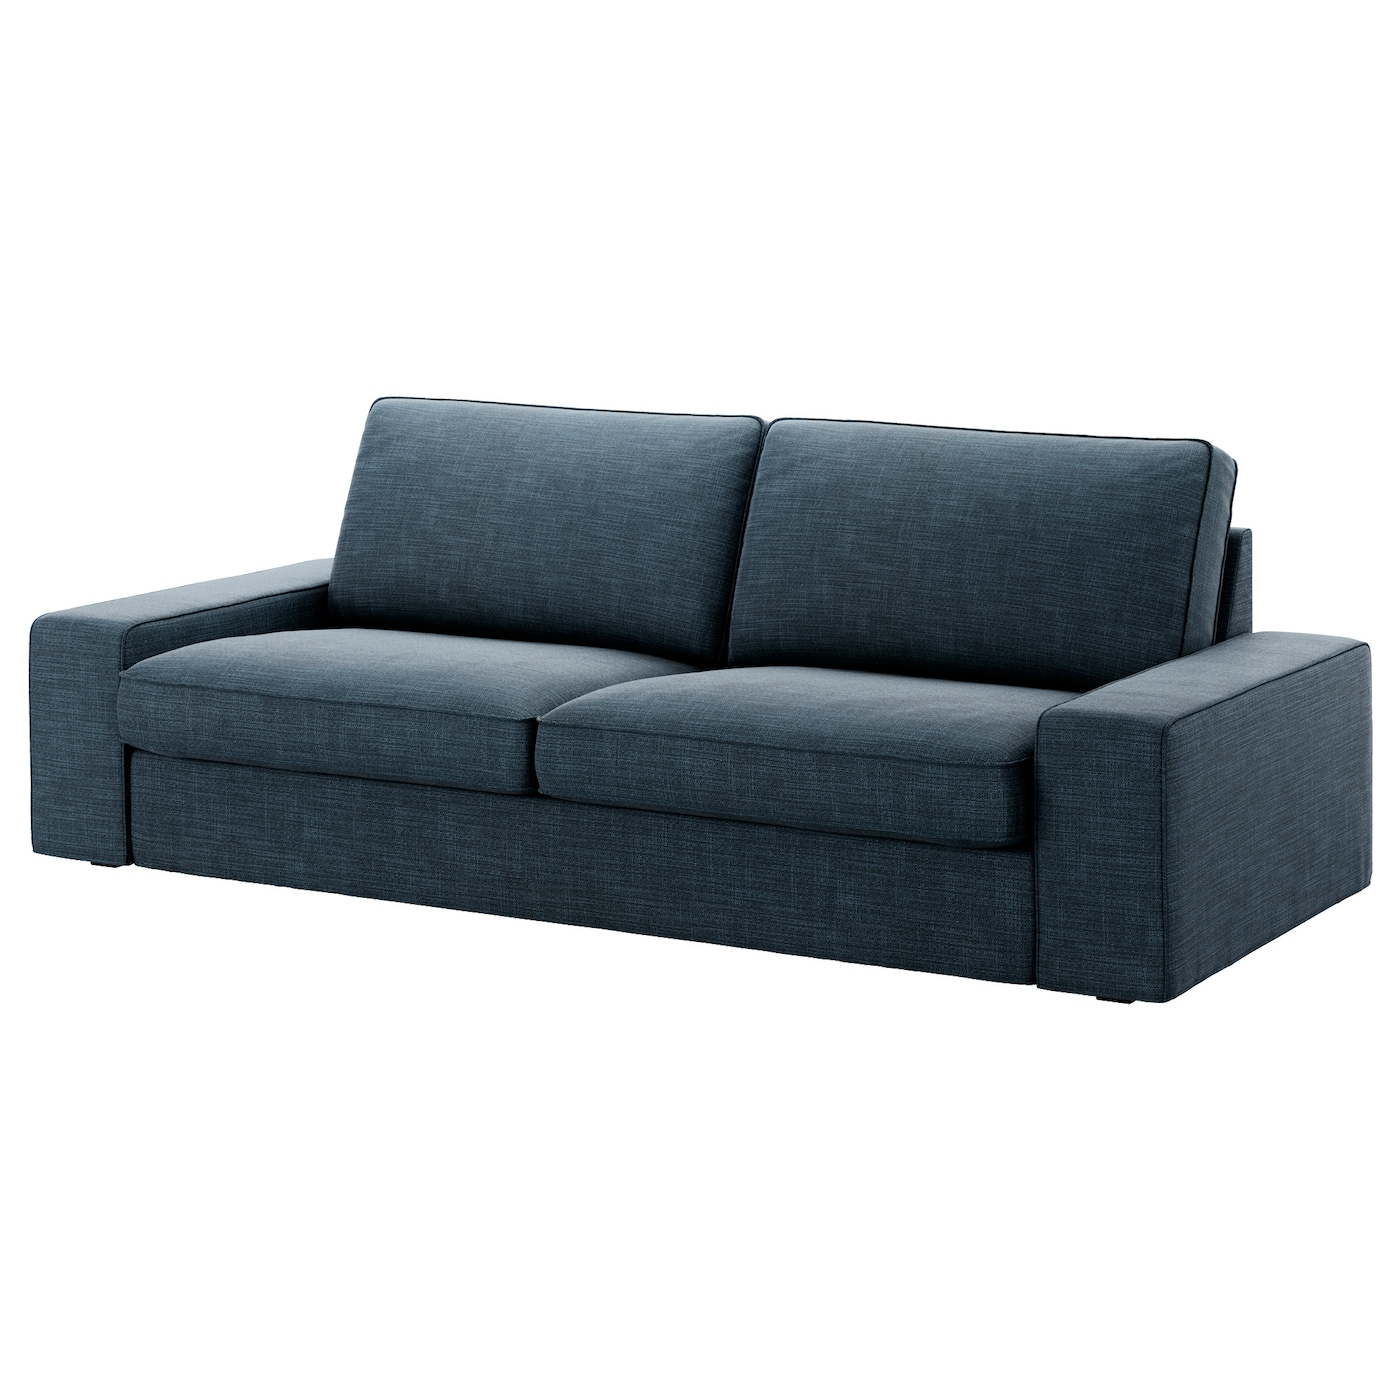 Kivik Three Seat Sofa Hillared Dark Blue Ikea